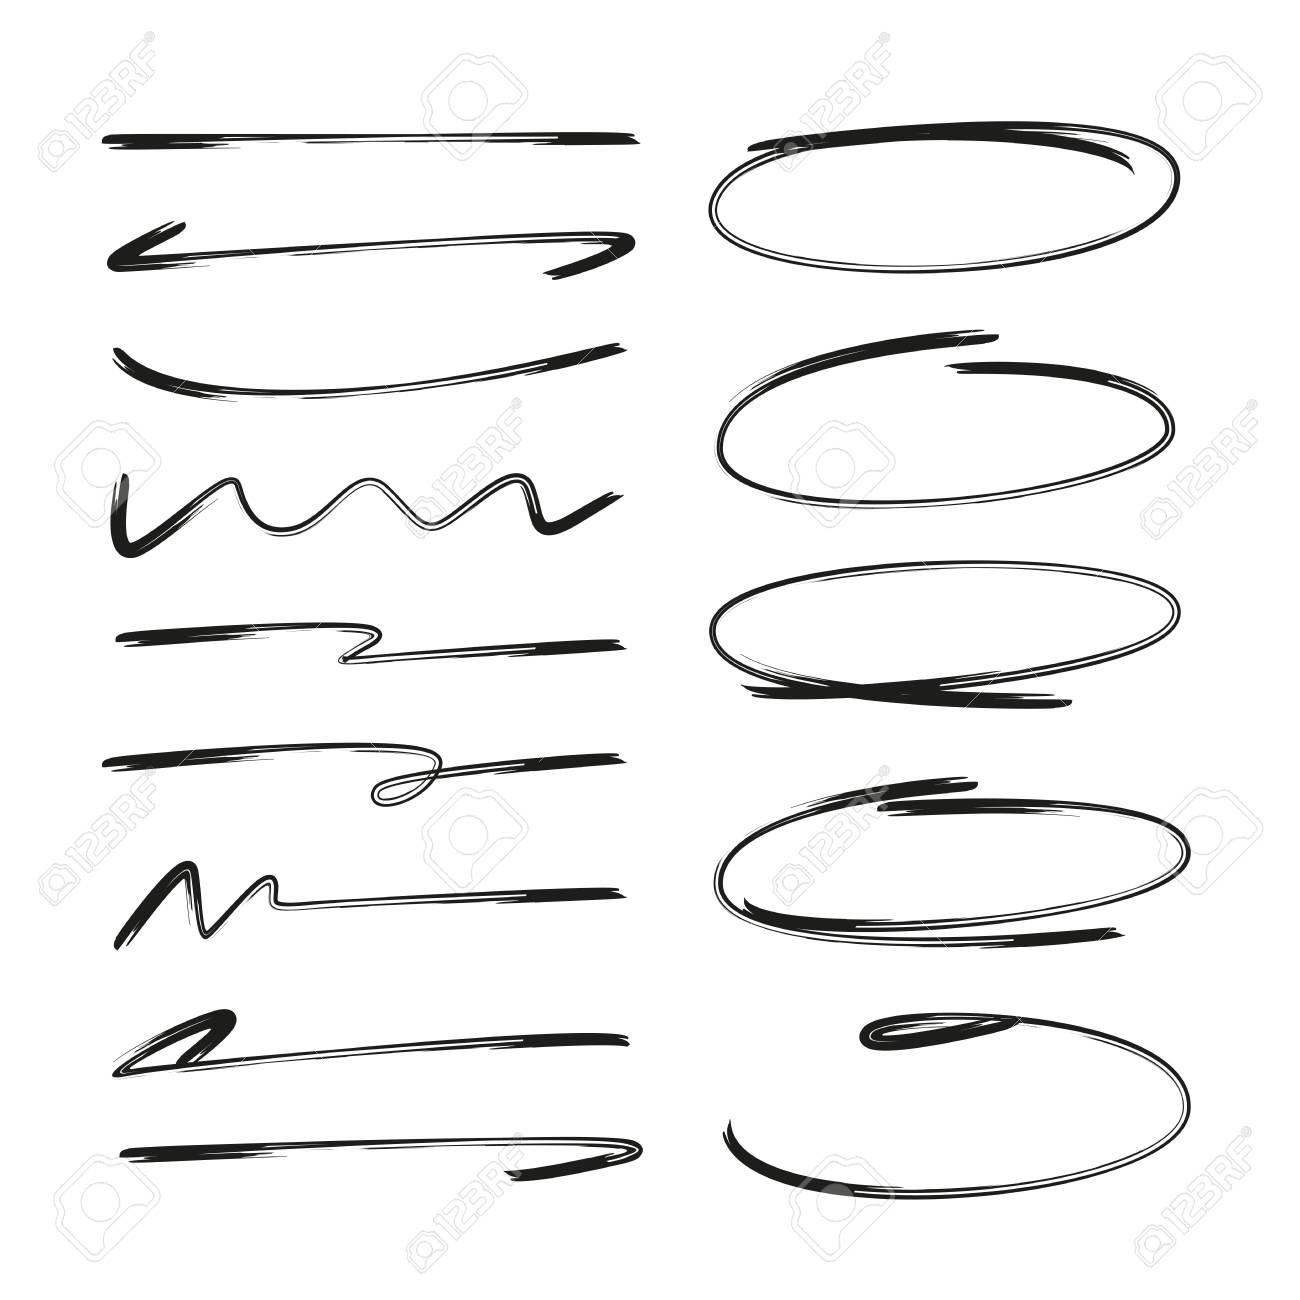 collection of hand drawn underlines and circle markers - 112312452